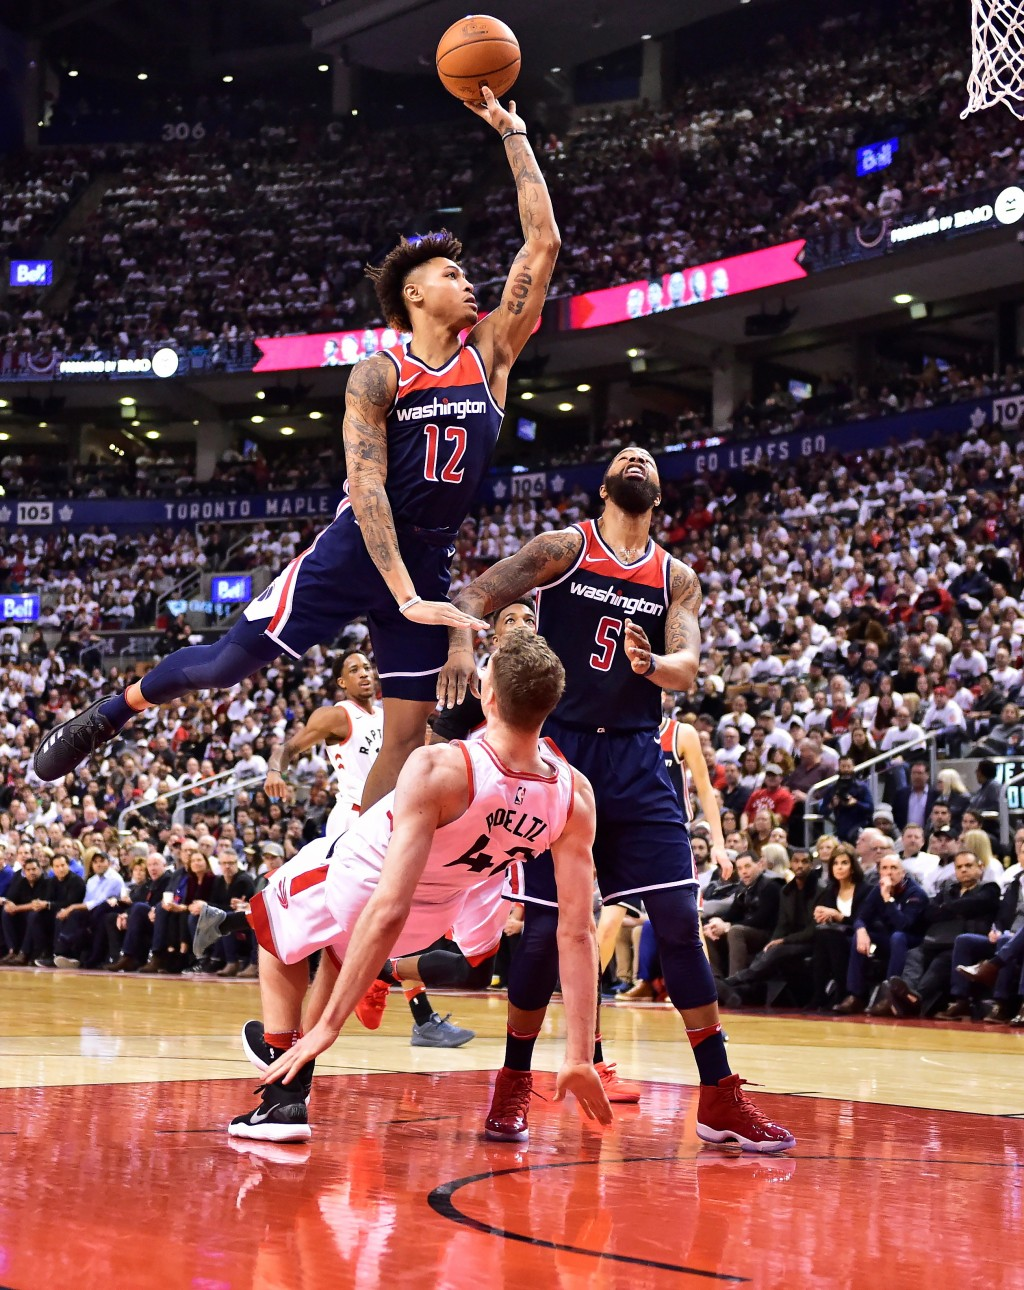 Washington Wizards forward Kelly Oubre Jr. (12) shoots over Toronto Raptors centrt Jakob Poeltl (42) as Wizards forward Markieff Morris (5) watches du